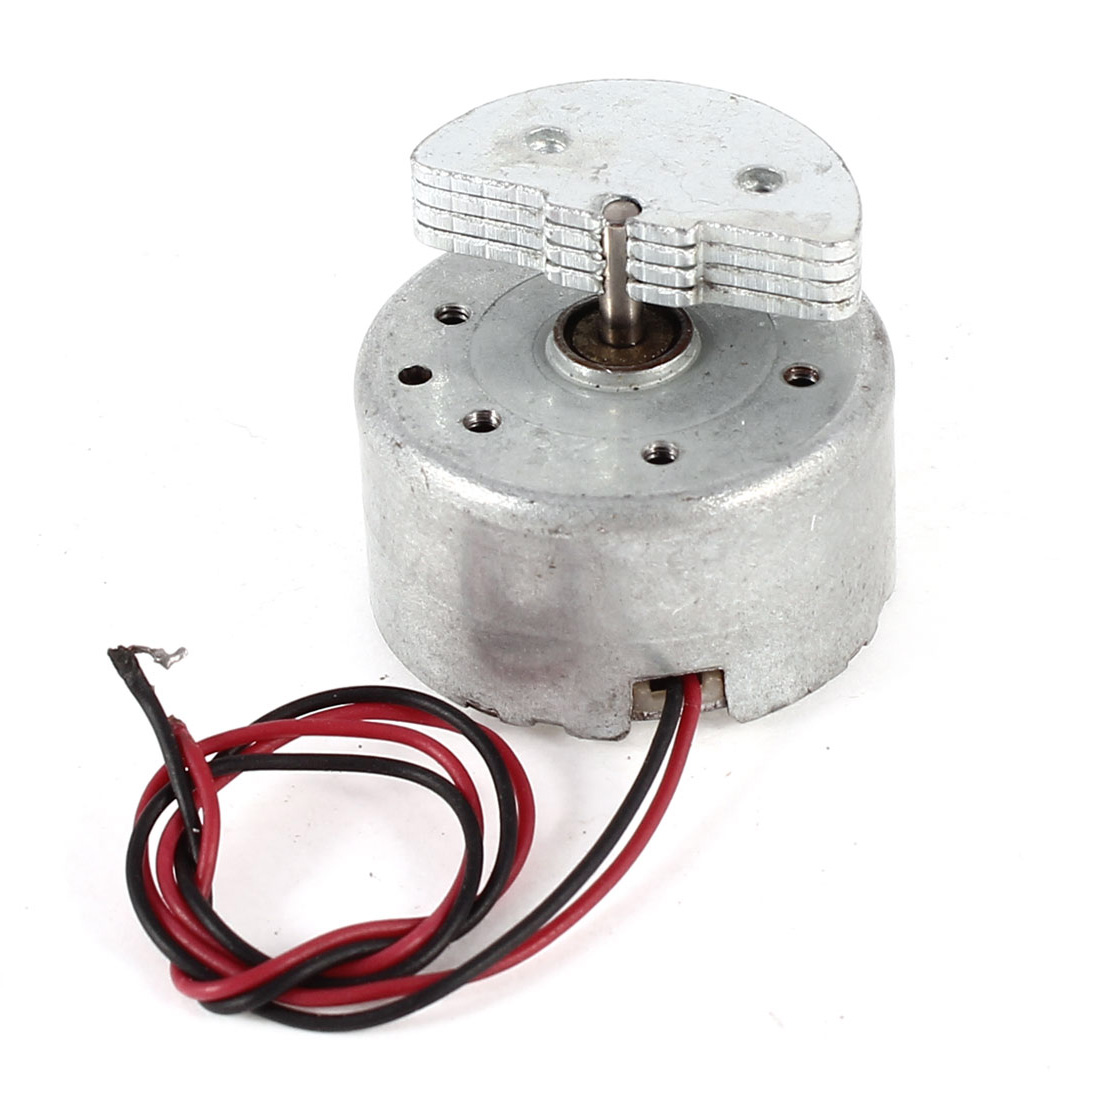 Mini-Vibration-Vibrating-Electric-Motor-3500RPM-DC-1-5-6V-RF300-for-Toys